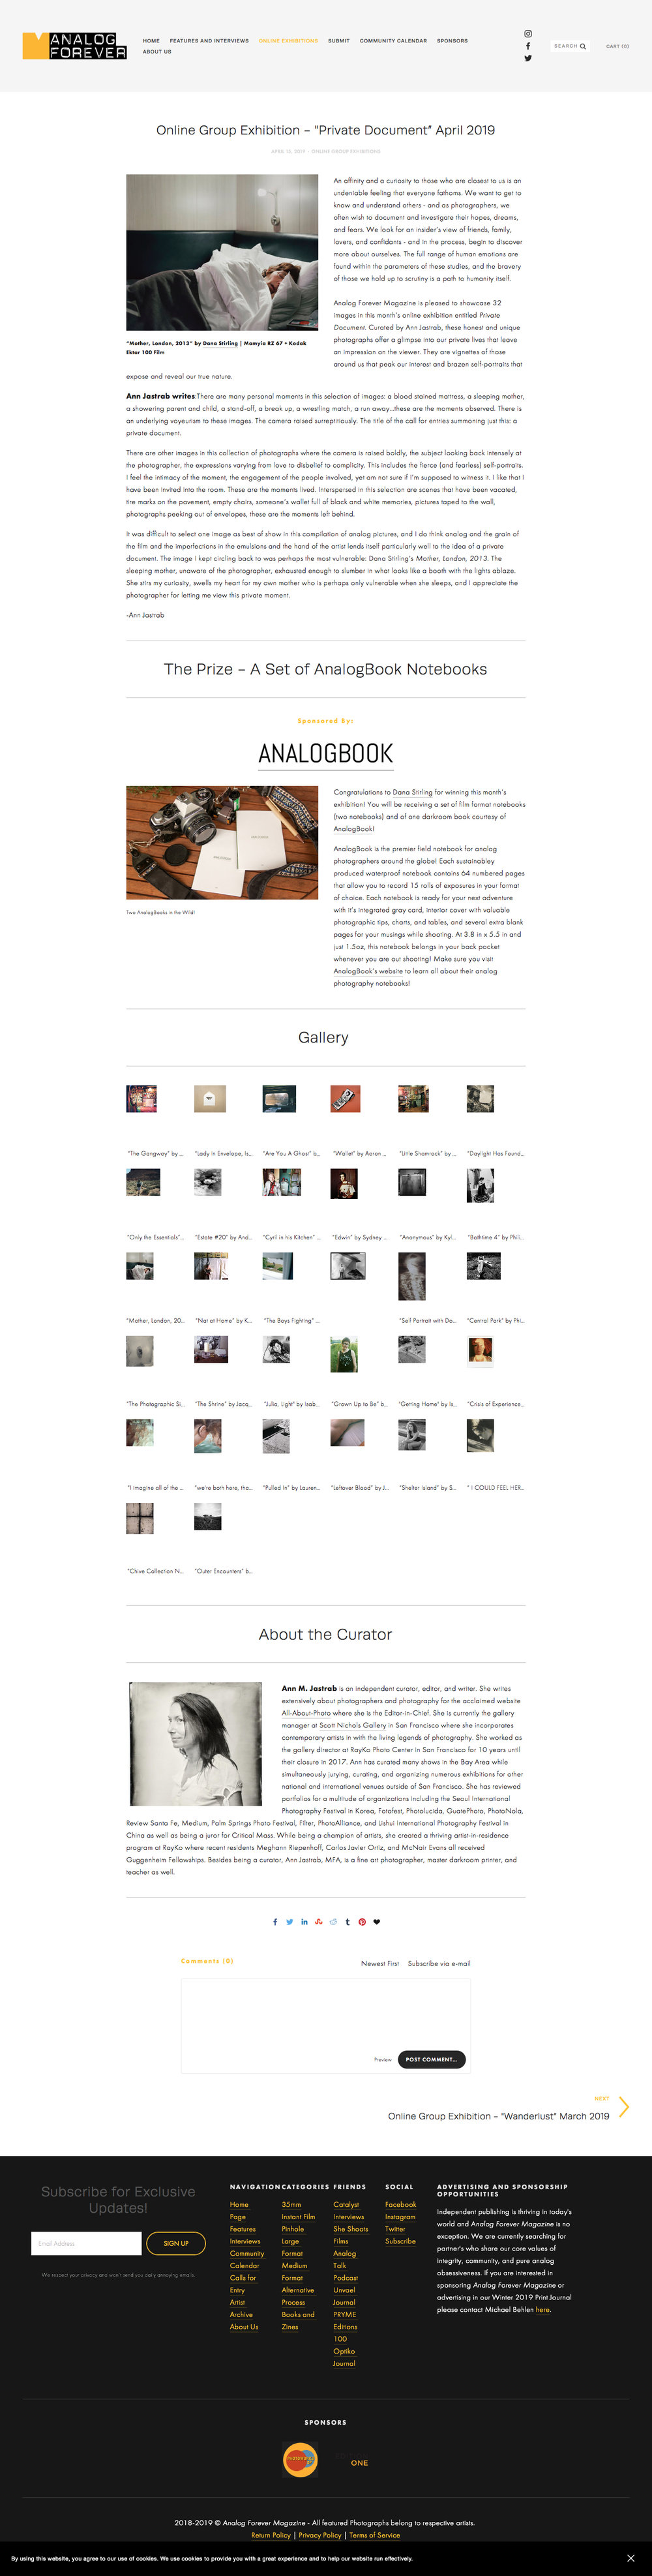 """Online Group Exhibition - %22Private Document"""" April 2019 — Analog Forever Magazine - Magazine Publisher of Analog Photography with Features, Interviews, Events, and Call for Entry (20190415).jpg"""